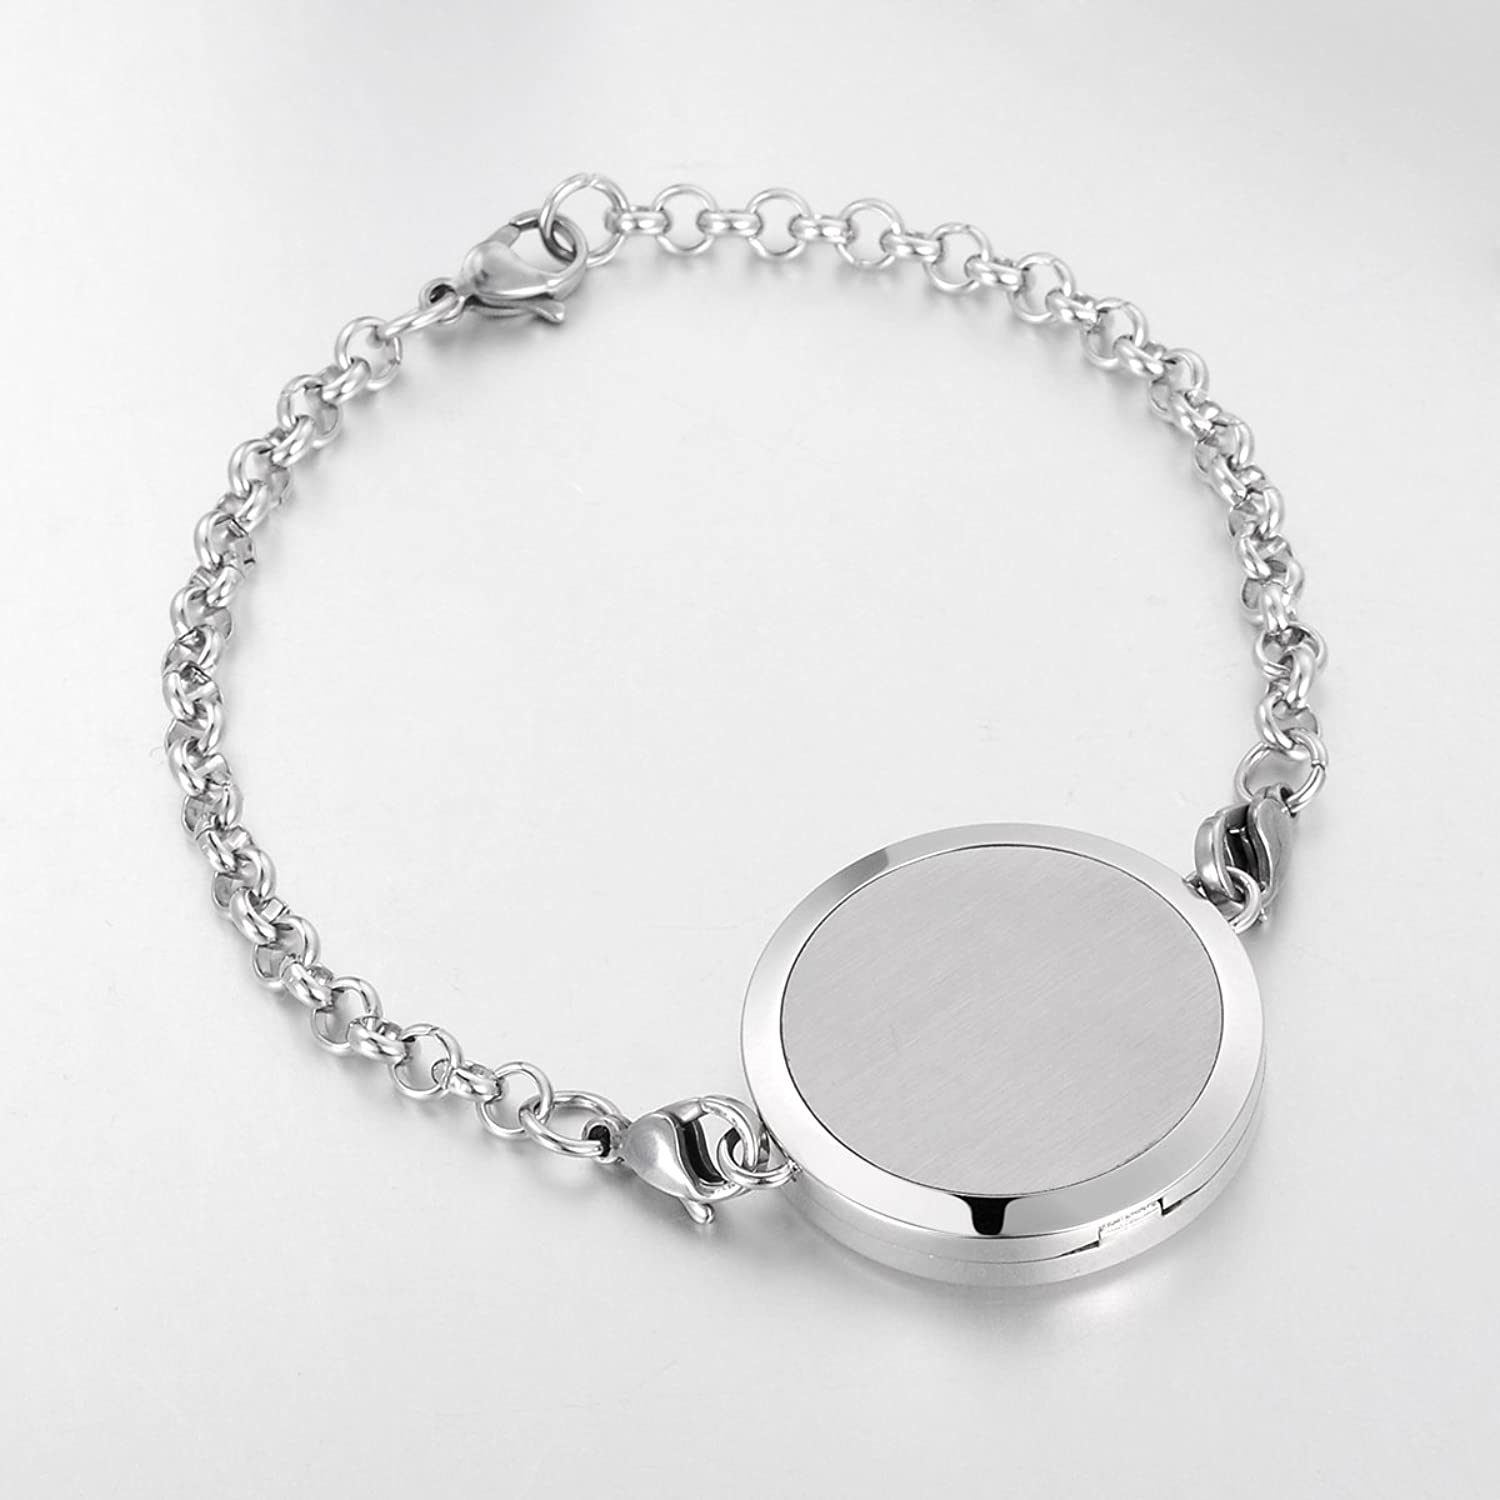 Valyria Aromatherapy Essential Oil Diffuser Bracelet, Lucky Cloud, Silver Stainless Steel